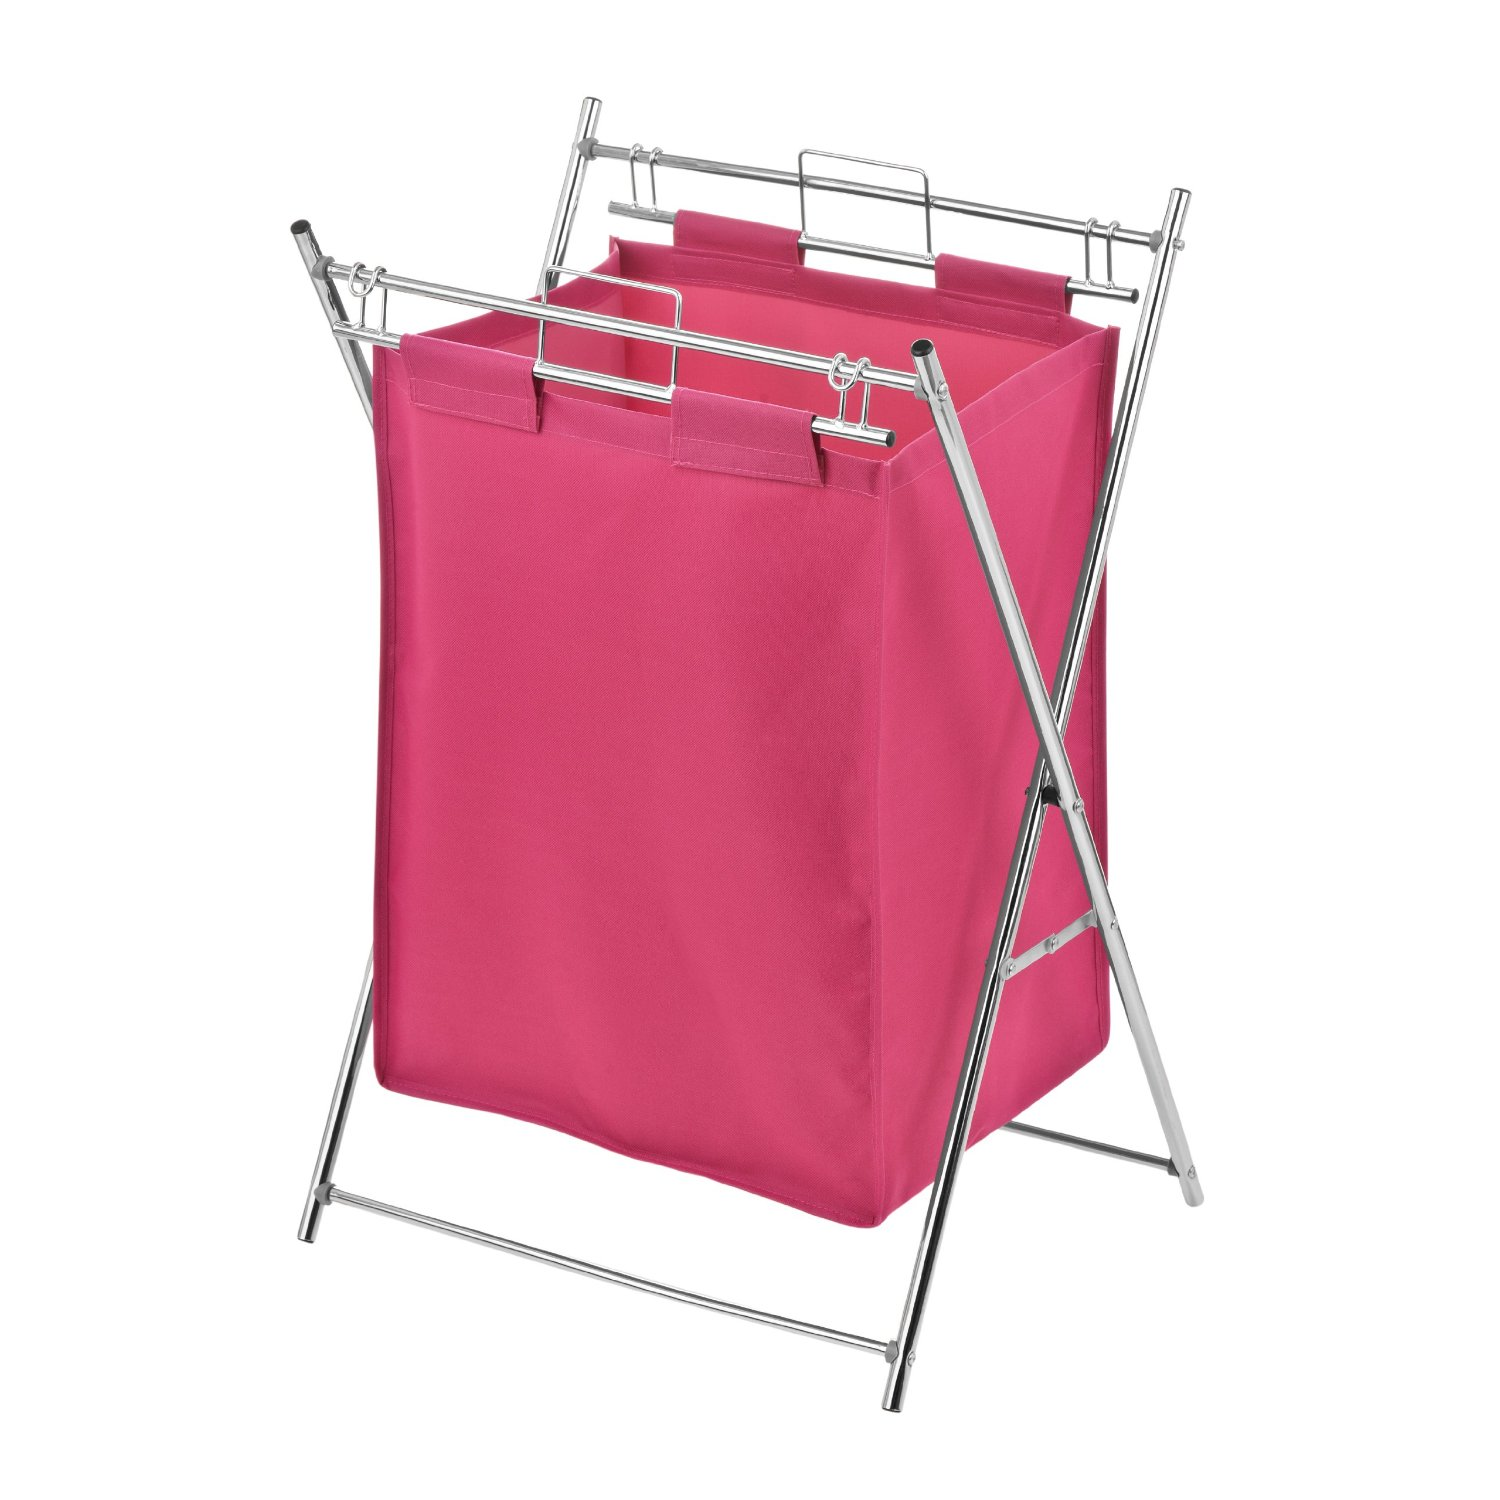 Chrome Laundry Basket Premier Hot Pink Polyester Bedroom Dirty Clothes Laundry